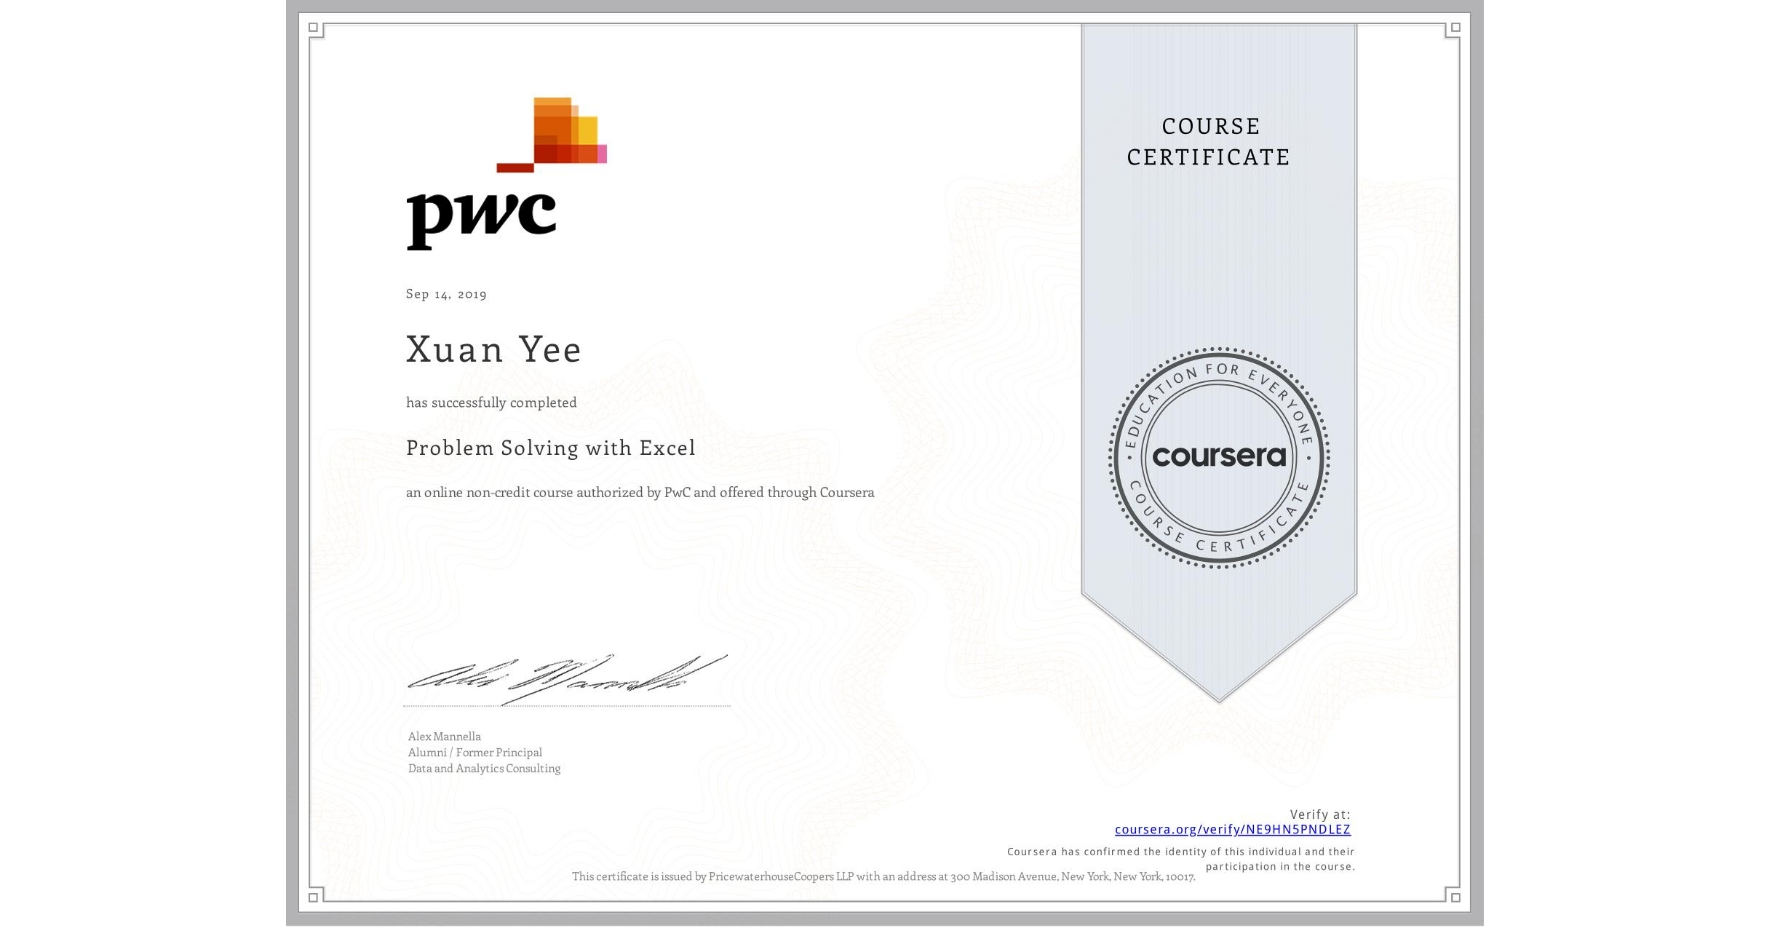 View certificate for Xuan Yee, Problem Solving with Excel , an online non-credit course authorized by PwC and offered through Coursera